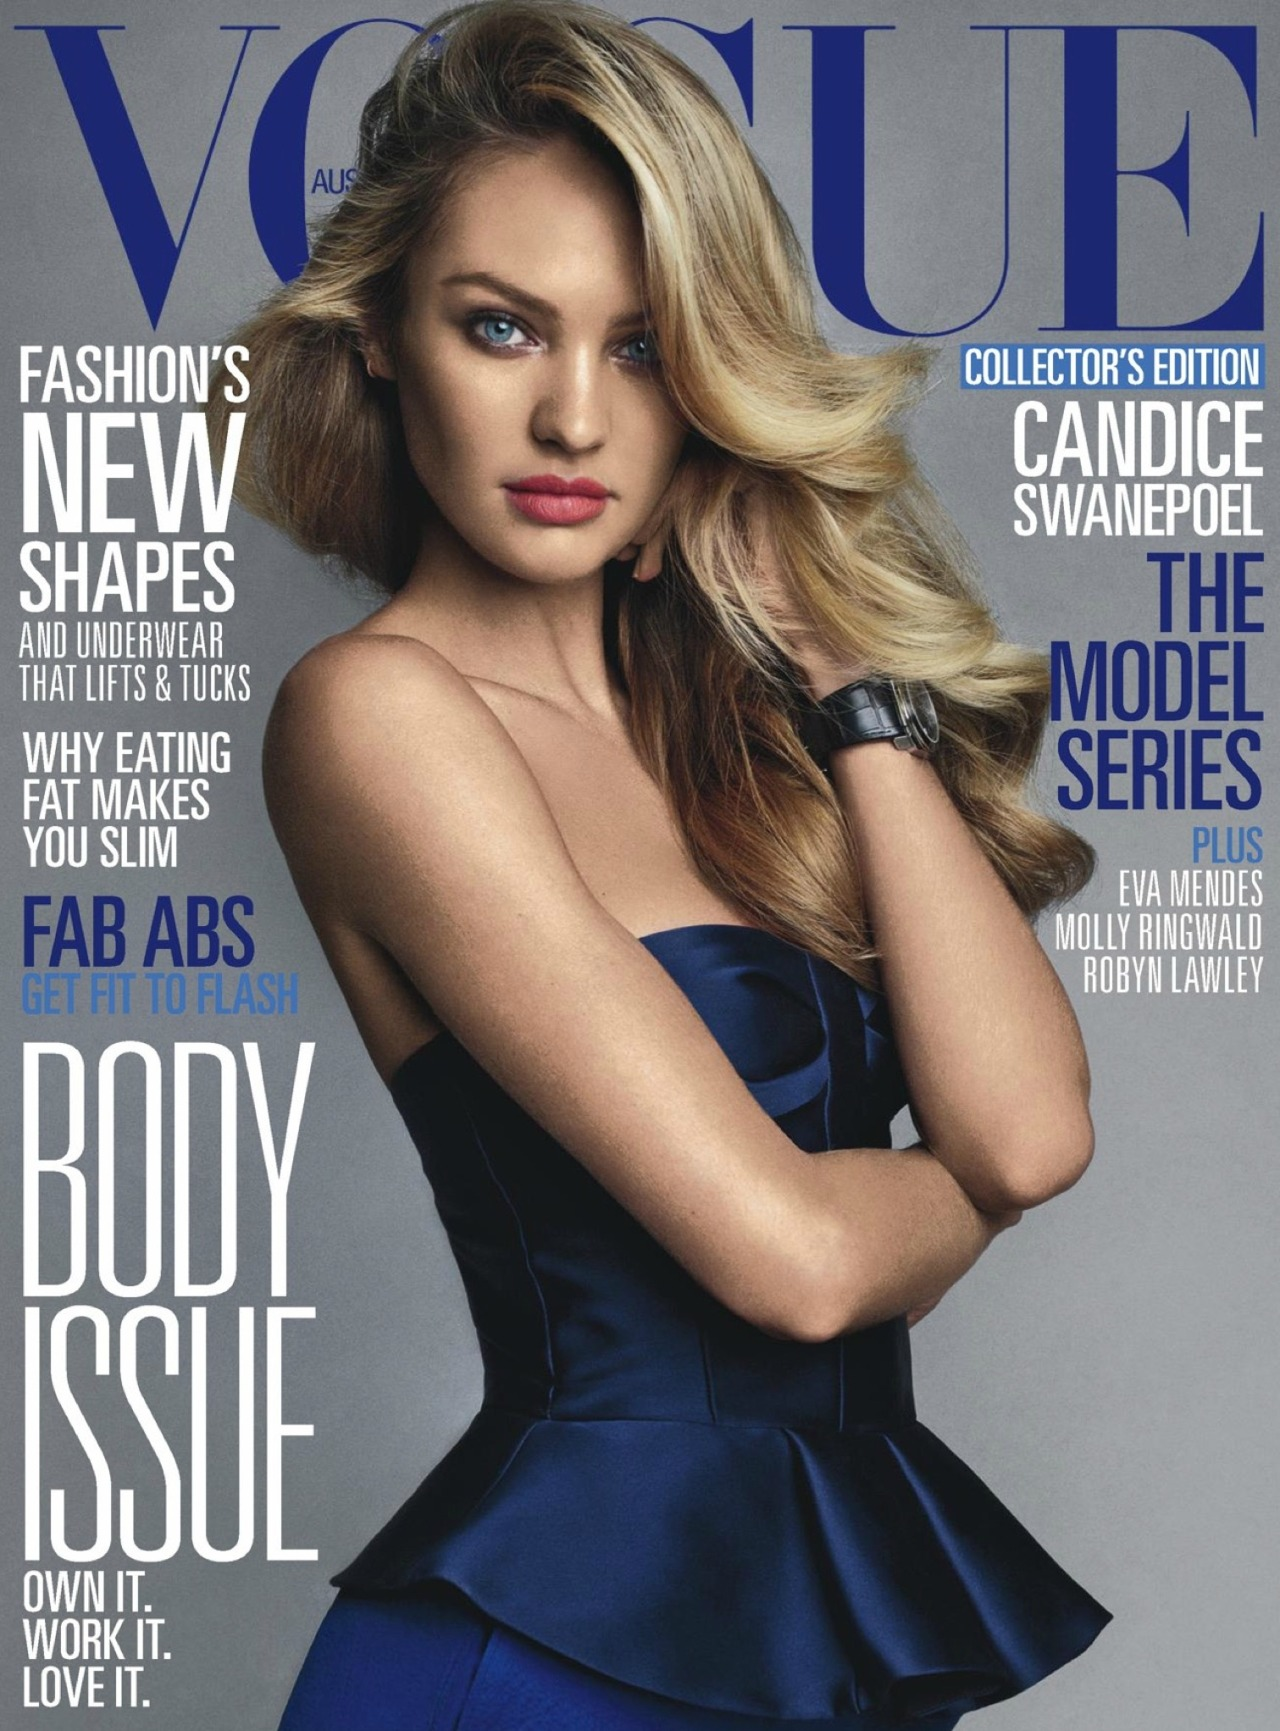 Candice Swanepoel for Vogue Australia